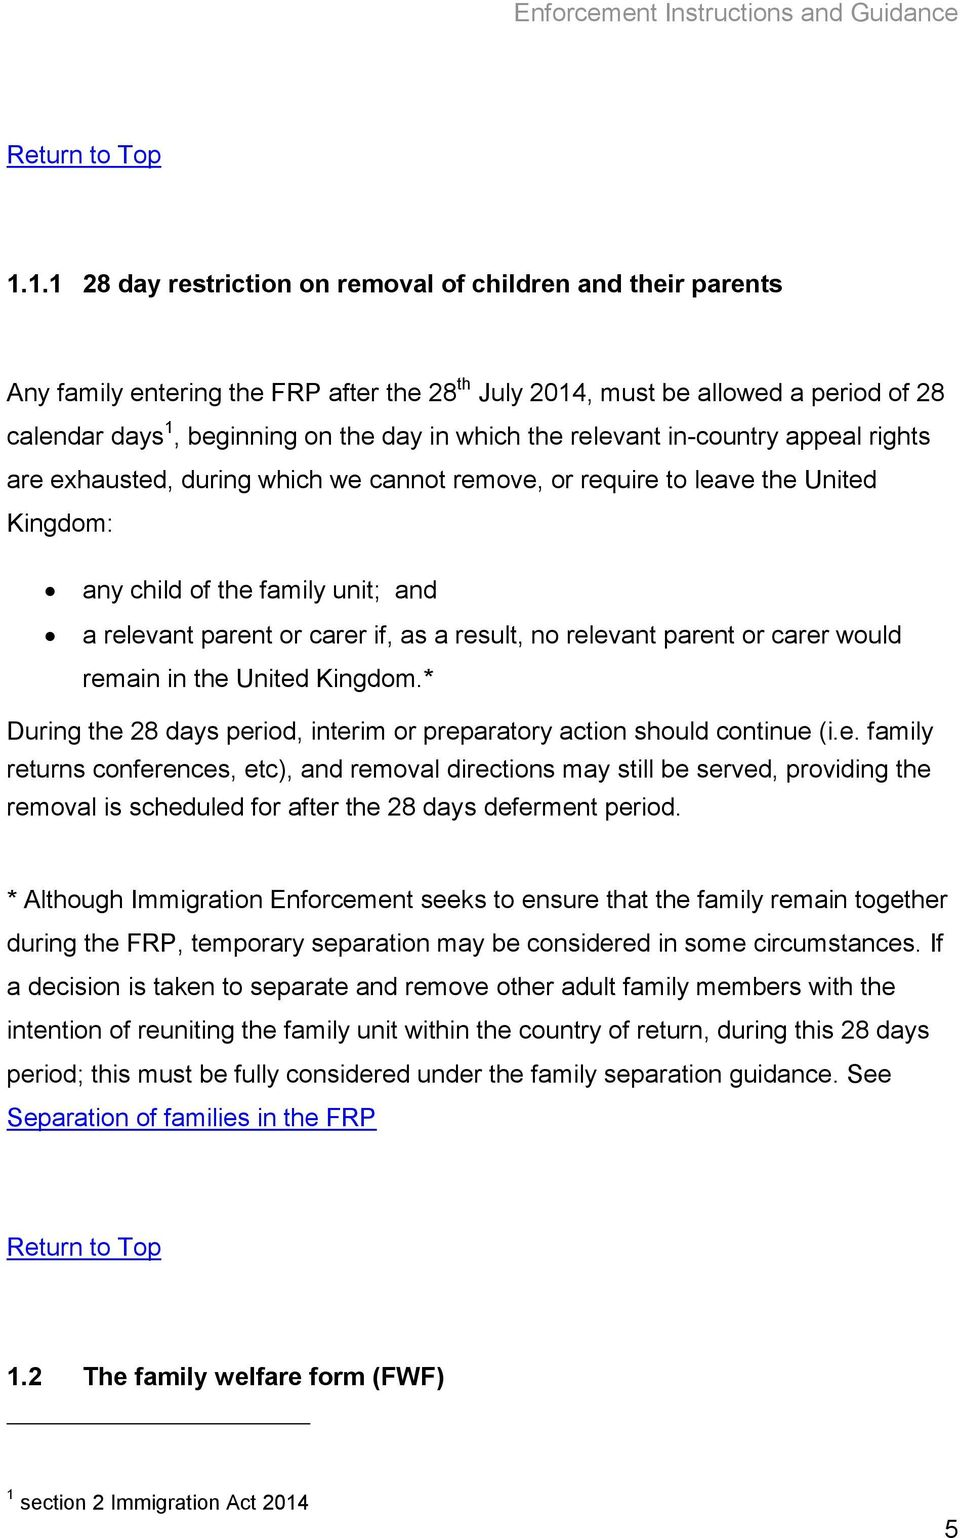 result, no relevant parent or carer would remain in the United Kingdom.* During the 28 days period, interim or preparatory action should continue (i.e. family returns conferences, etc), and removal directions may still be served, providing the removal is scheduled for after the 28 days deferment period.